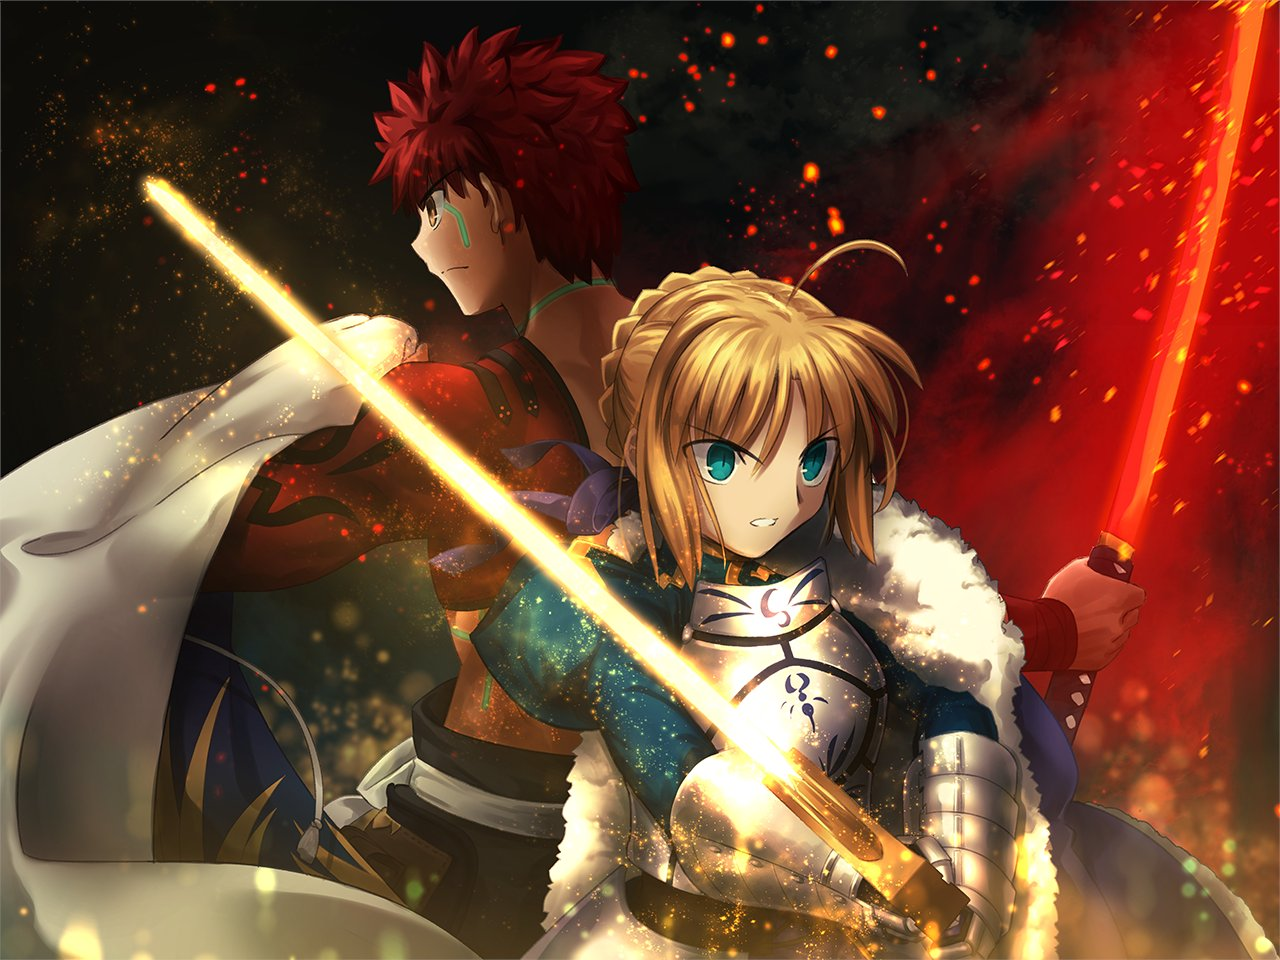 1boy 1girl ahoge armor armored_dress artoria_pendragon_(all) back-to-back bangs blonde_hair braid cape commentary dress emiya_shirou excalibur eyebrows_visible_through_hair fate/grand_order fate/stay_night fate_(series) french_braid gauntlets green_eyes hair_between_eyes hair_ribbon holding holding_sword holding_weapon igote japanese_armor japanese_clothes katana kusazuri limited/zero_over long_sleeves magic_circuit migiha orange_hair ponytail ribbon saber sengo_muramasa_(fate) short_hair single_bare_shoulder skirt sword weapon yellow_eyes